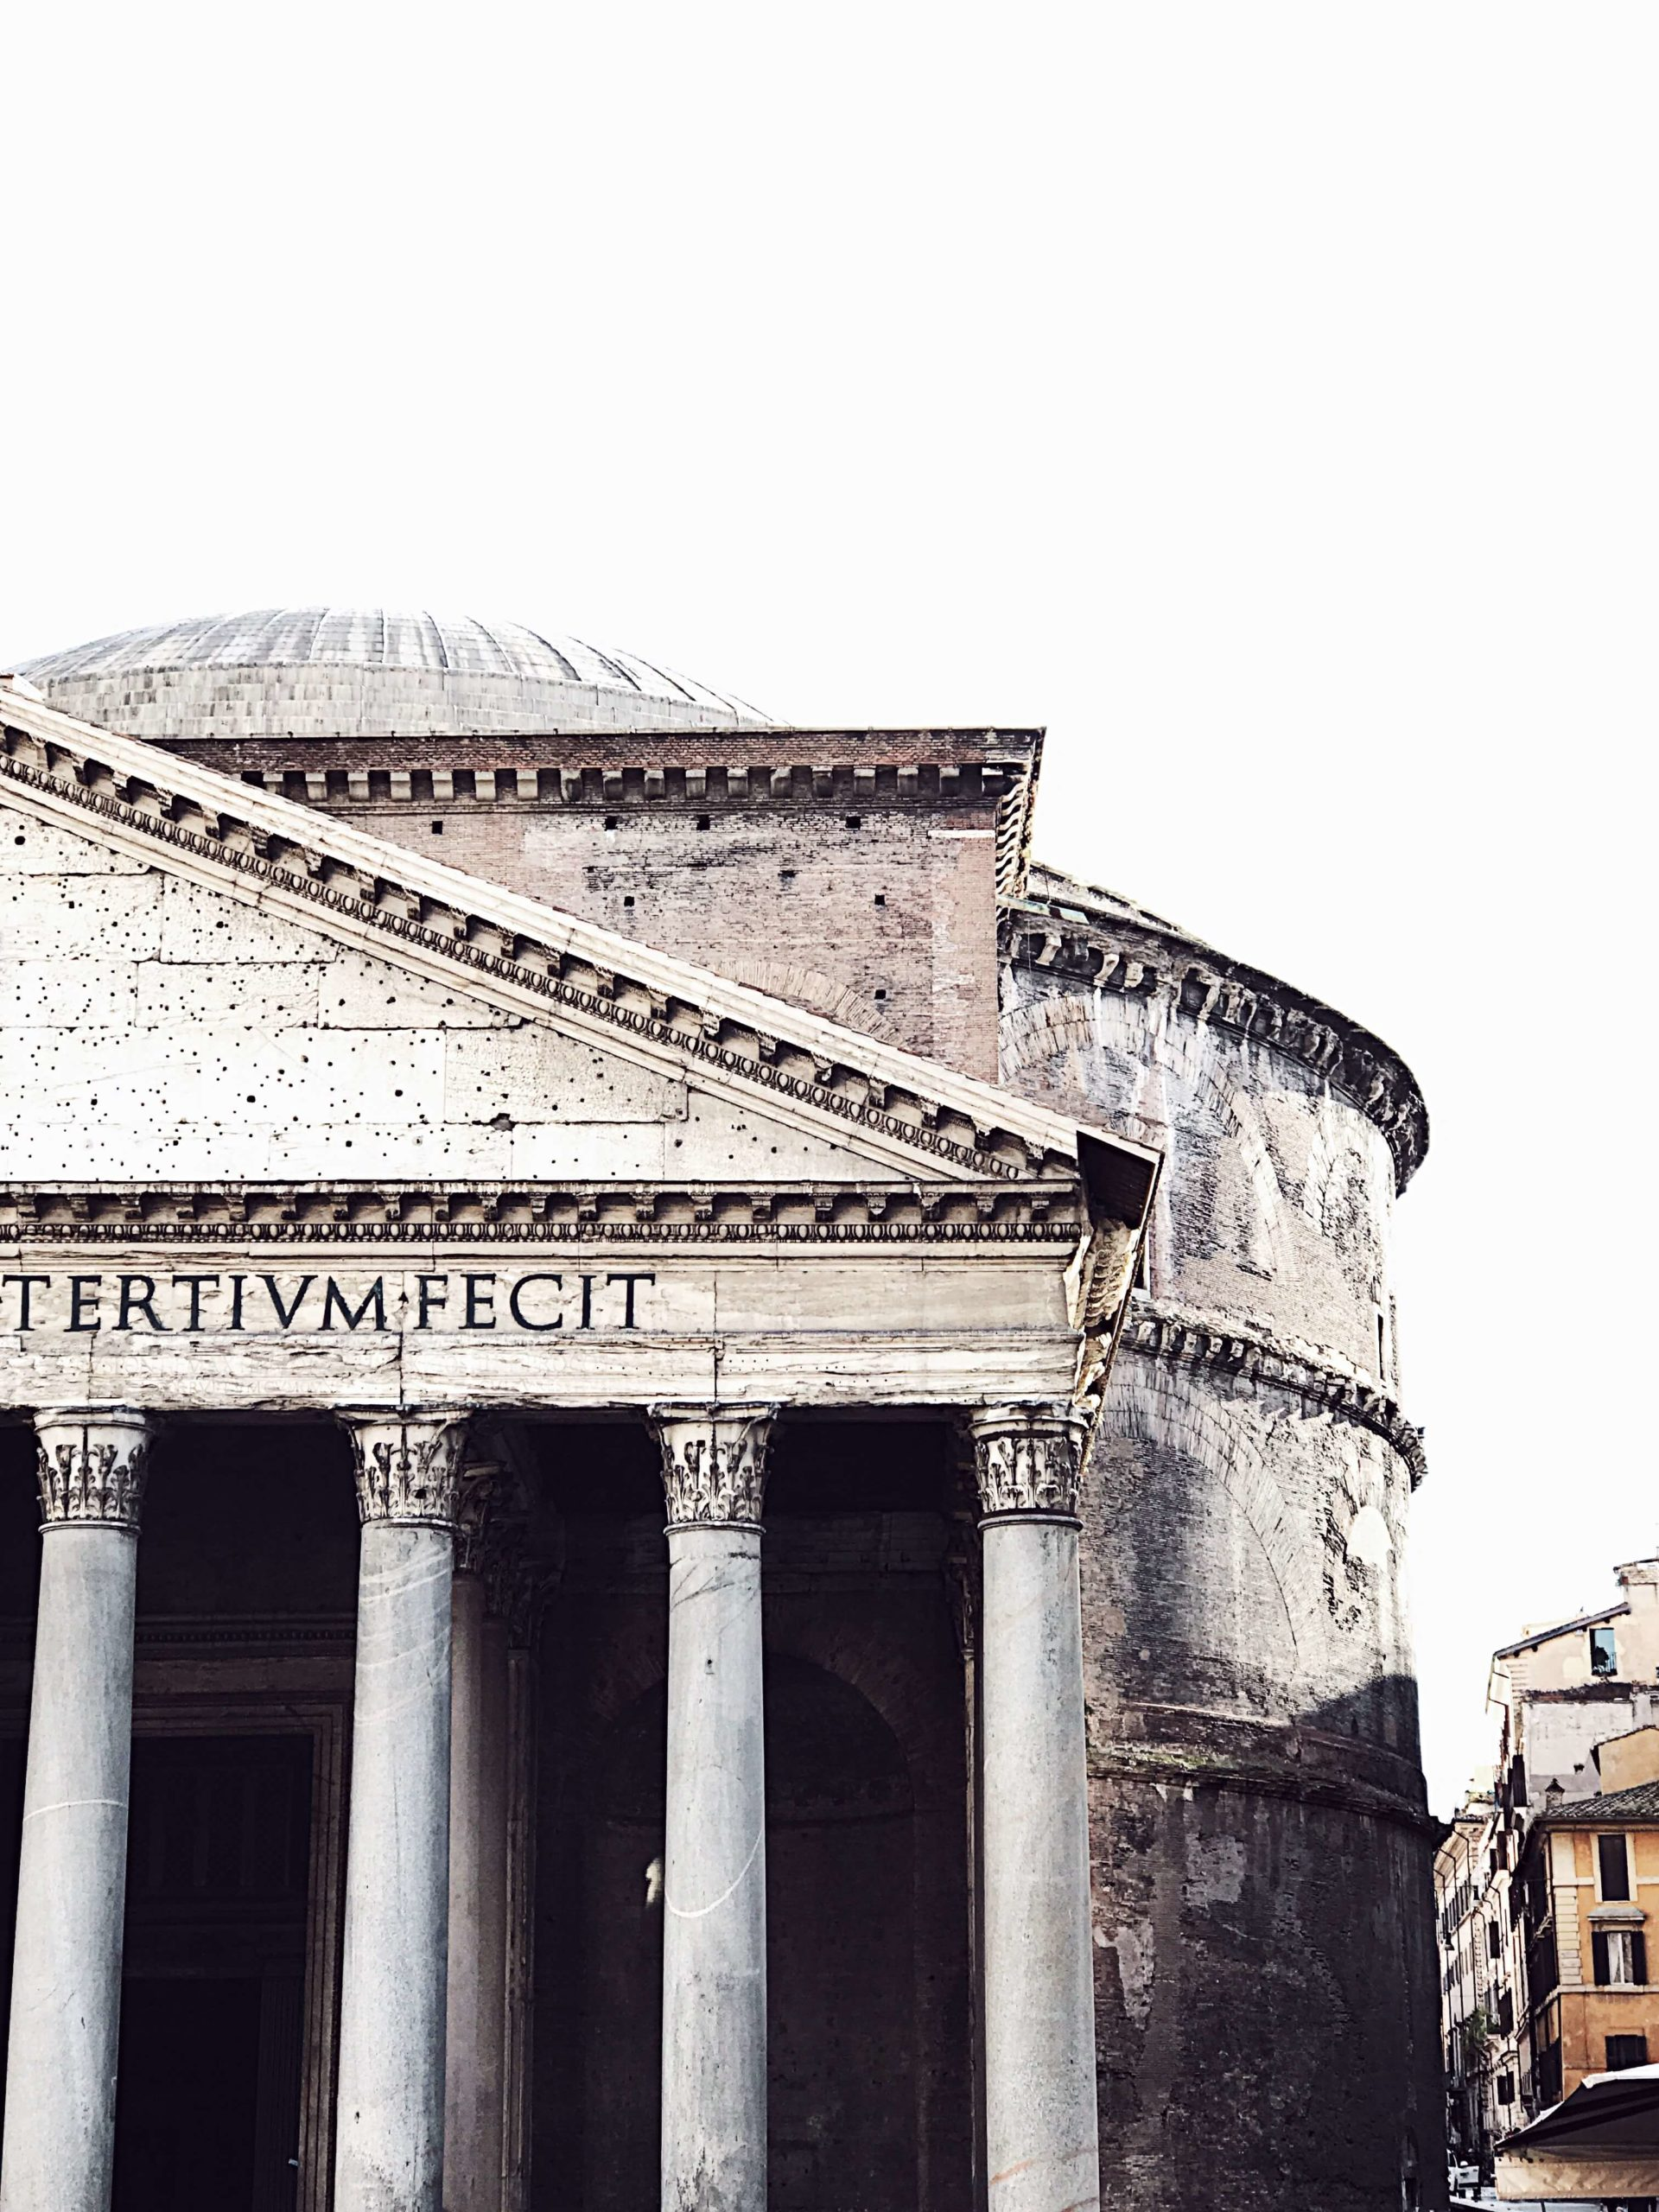 Rome in pictures: the pantheon